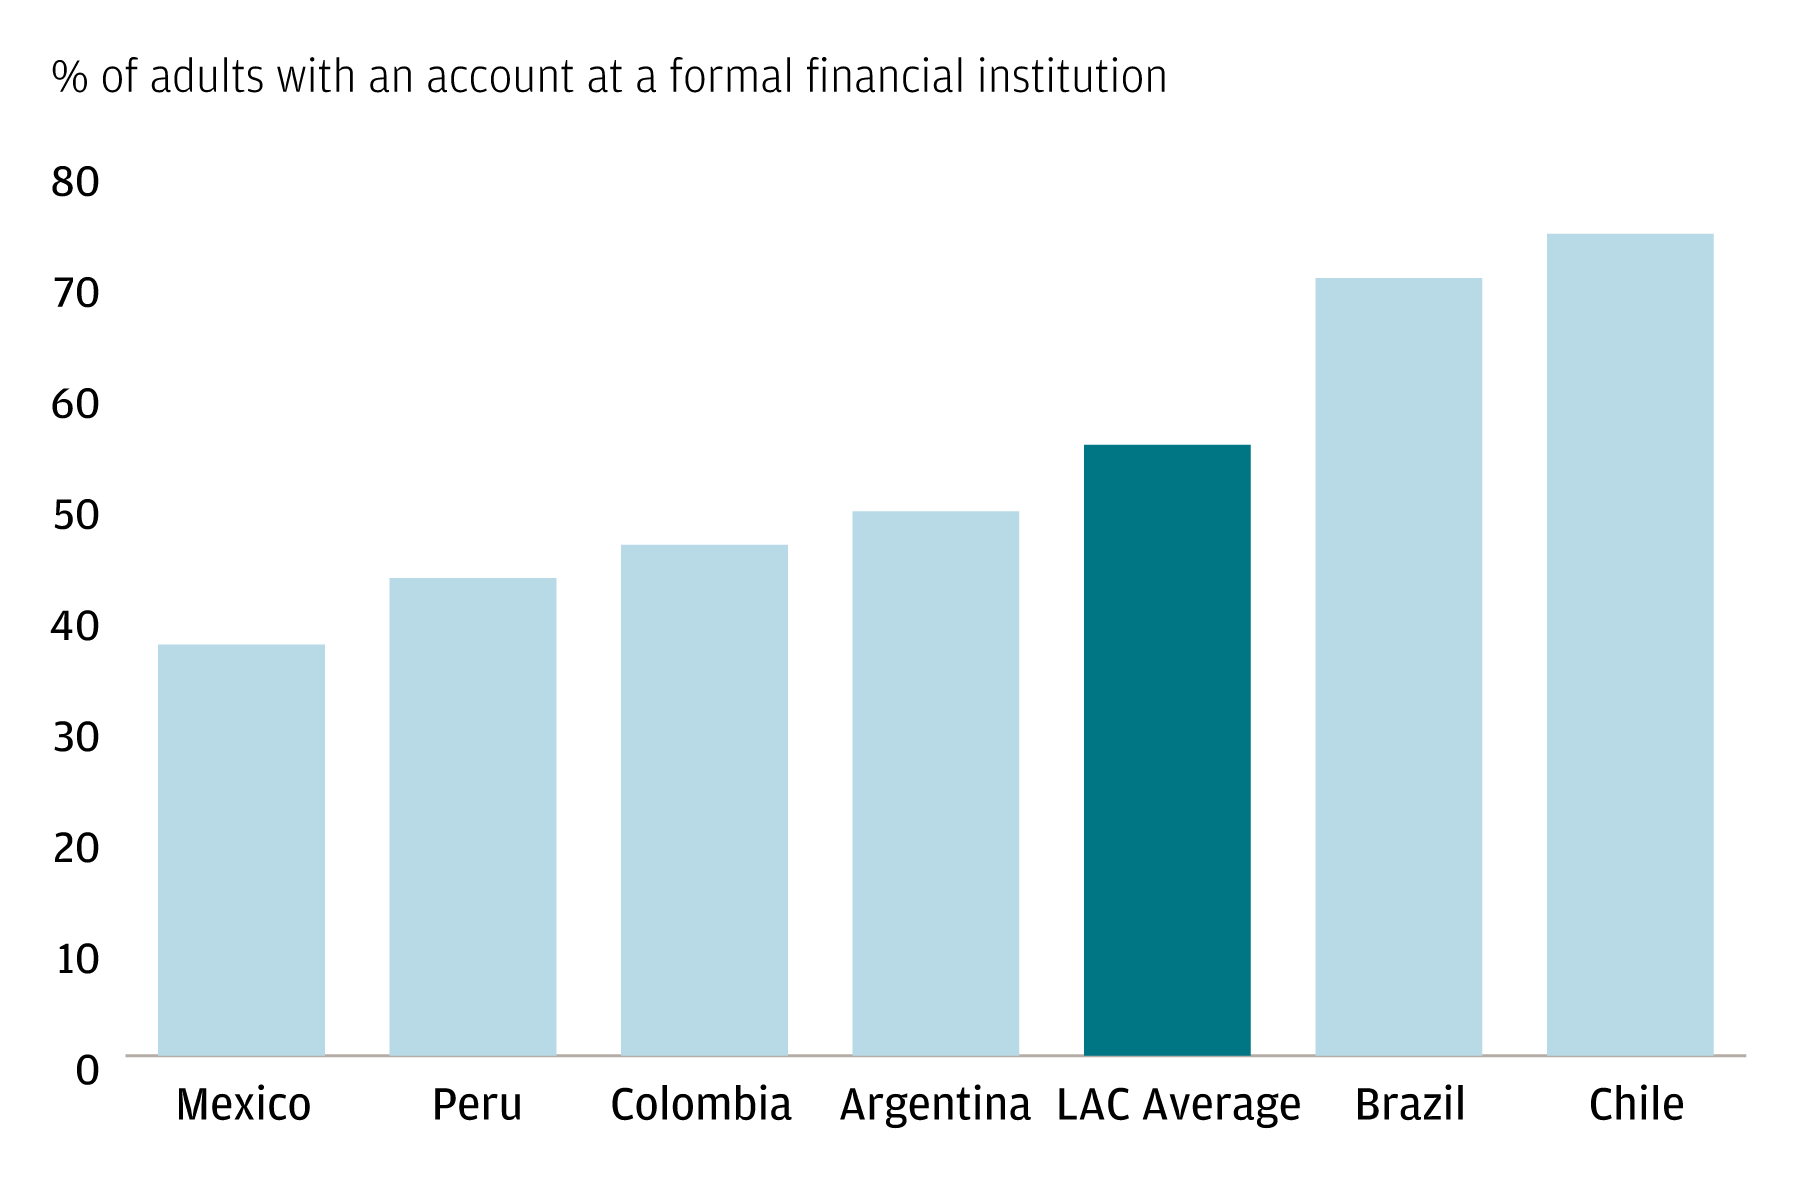 A bar chart showing account penetration through the percentage of adults with an account at a formal financial institution, for select Latin America and Caribbean countries versus the regional average.